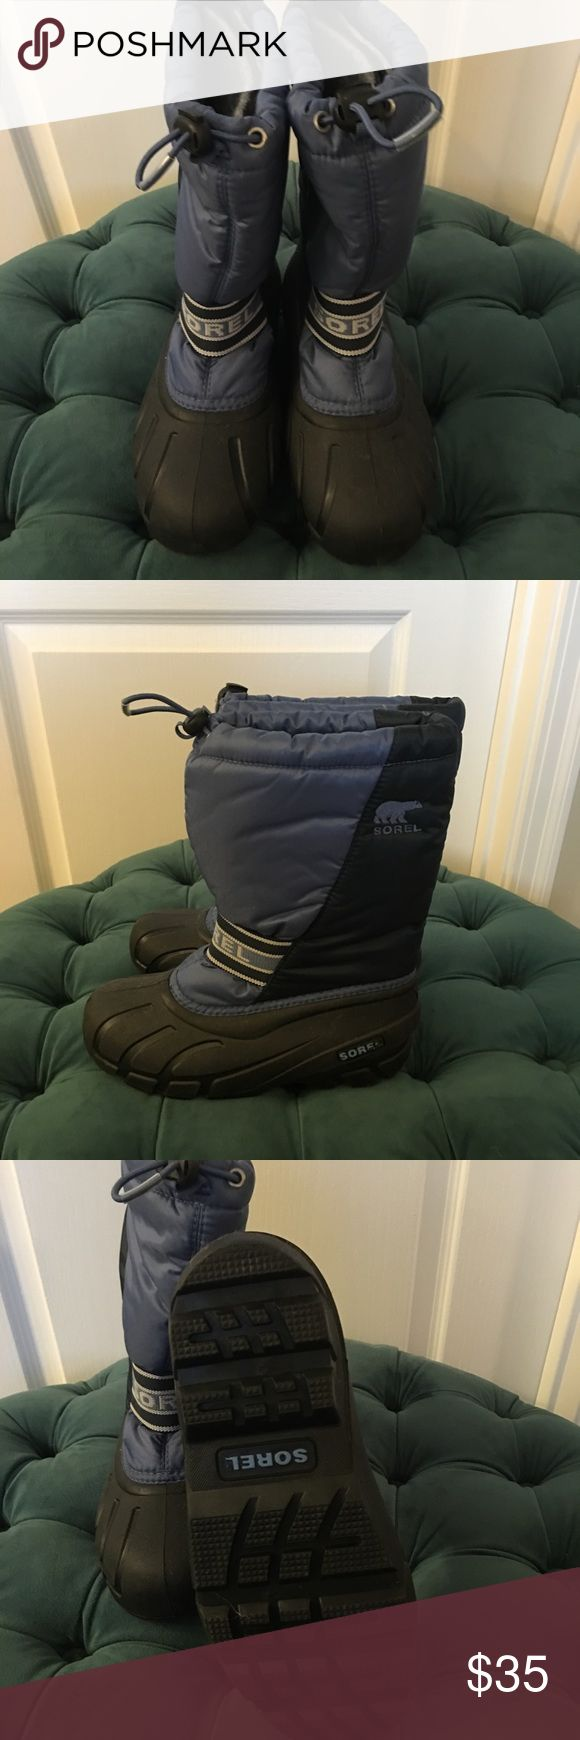 Sorel kids boots Big kids size 4. Barely worn. Insulated and waterproof snow boots. Sorel Shoes Rain & Snow Boots